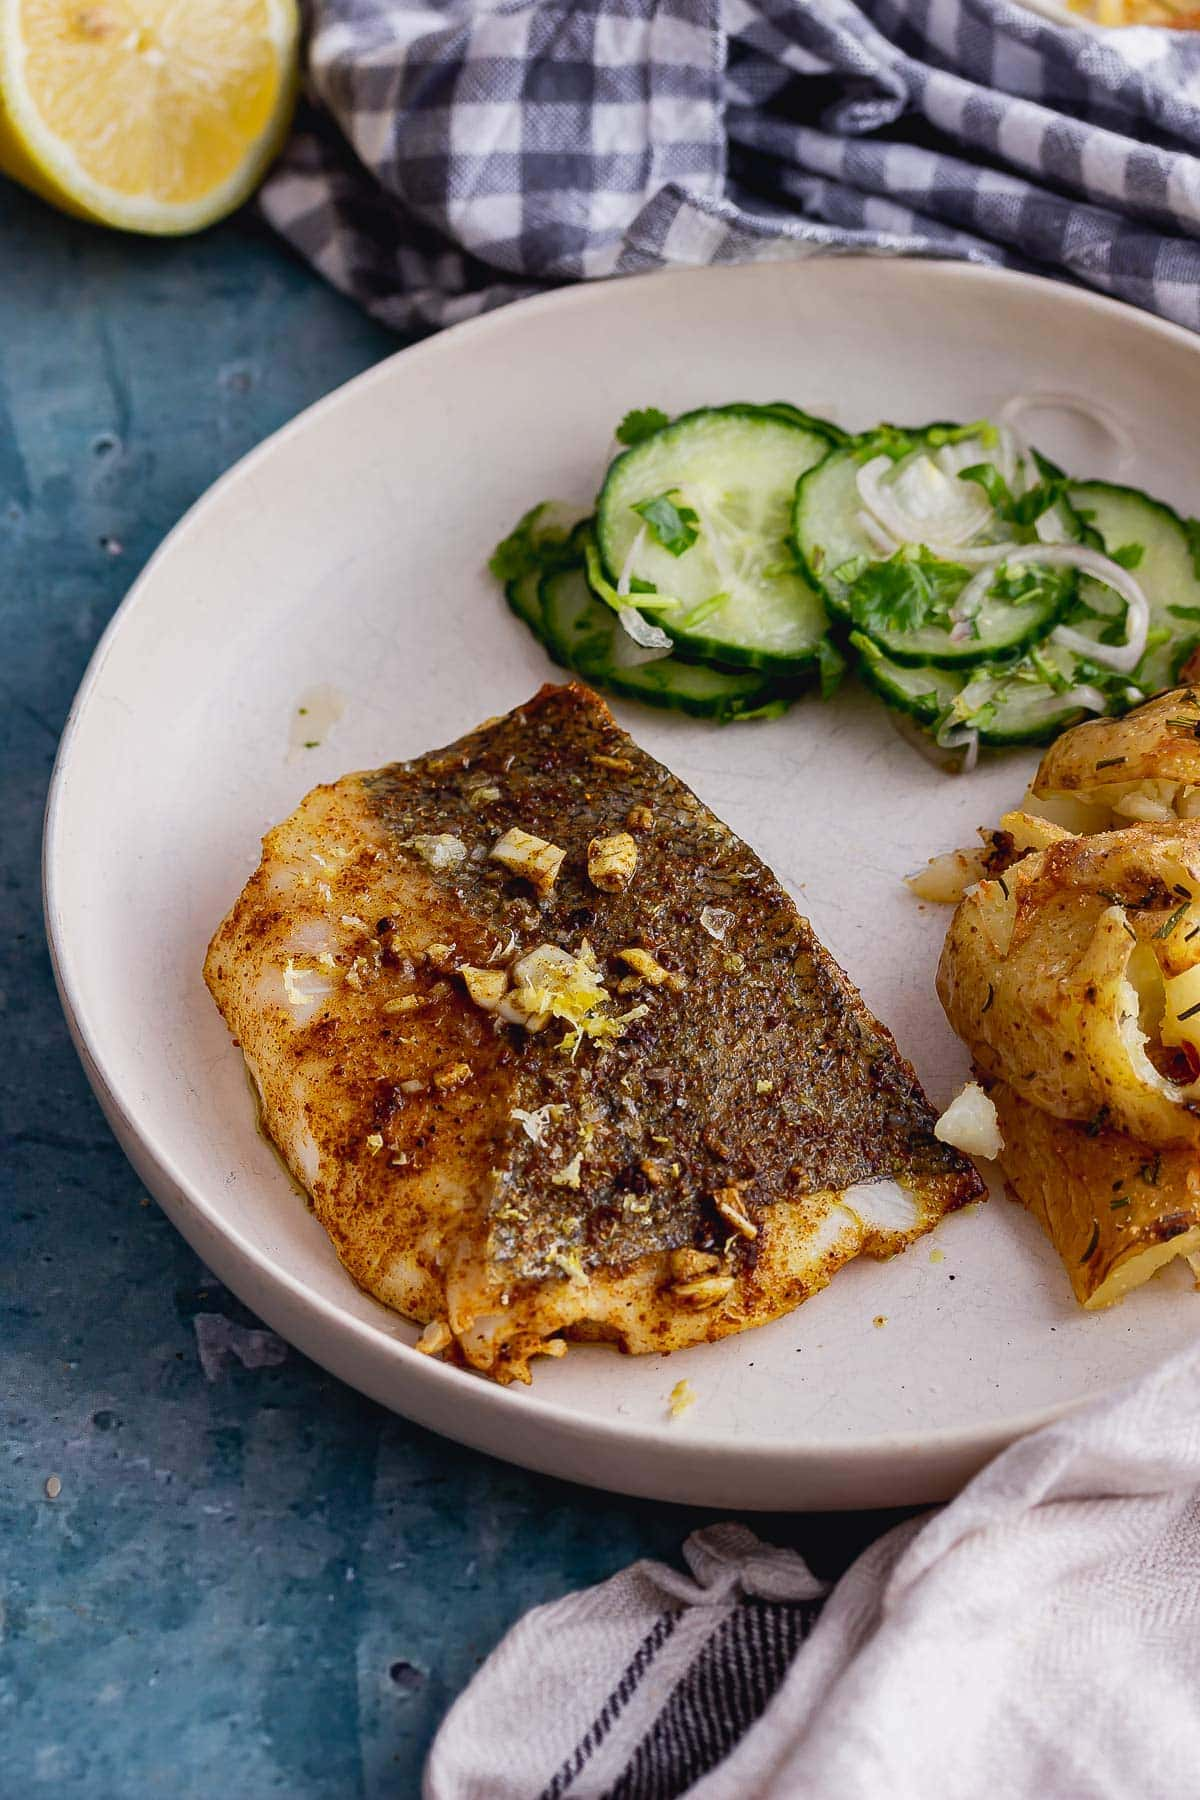 Spiced fish on a white plate with cucumber salad